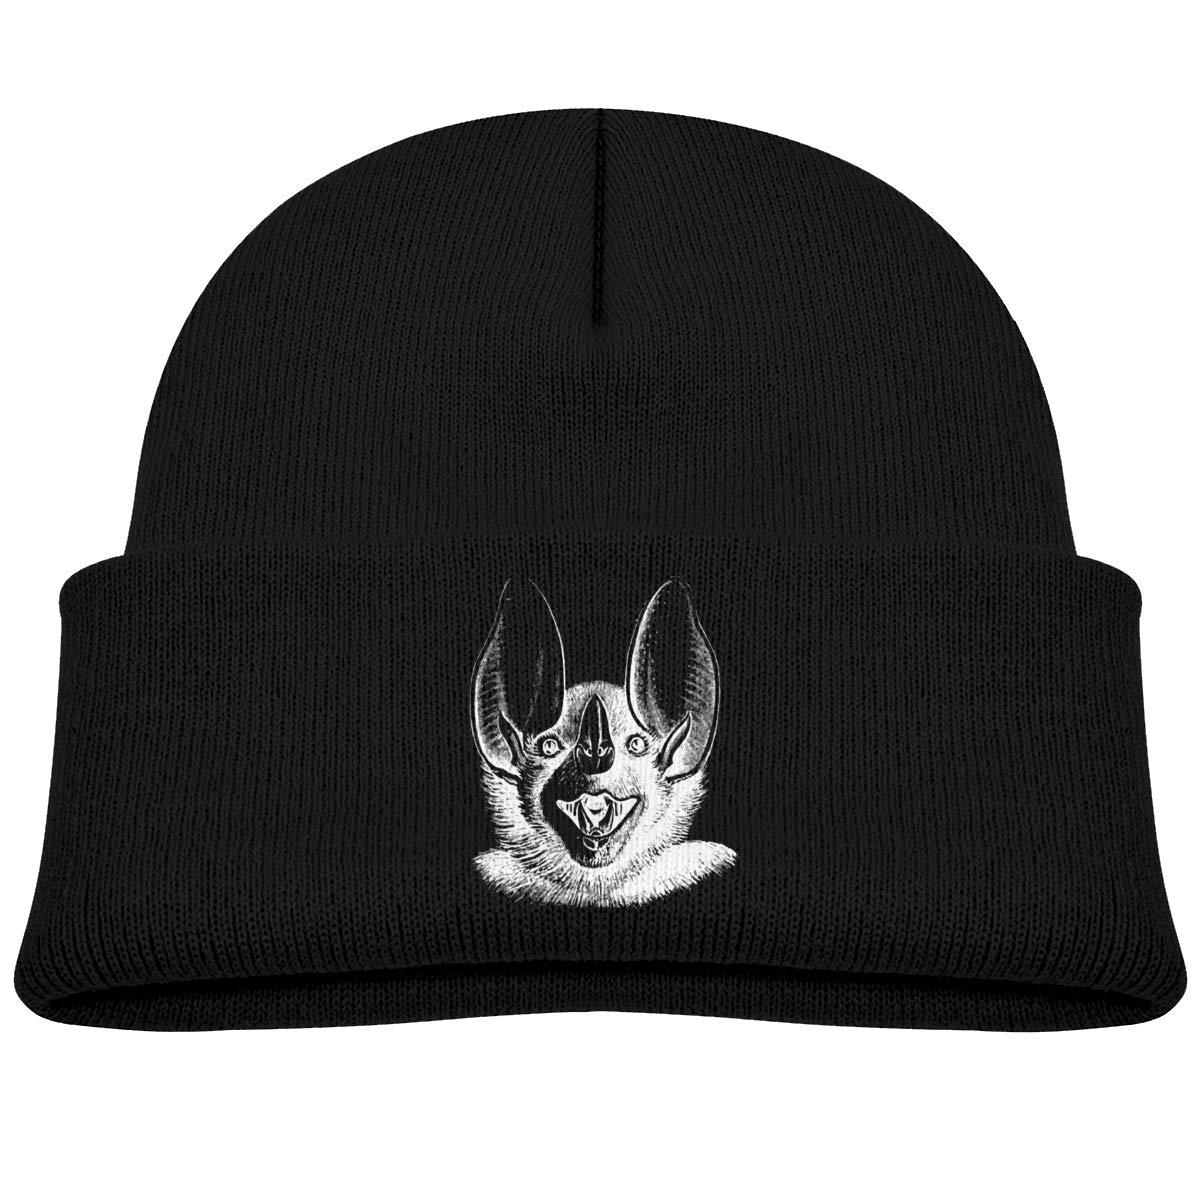 Funny Bat Head Skull Hat Baby Boy